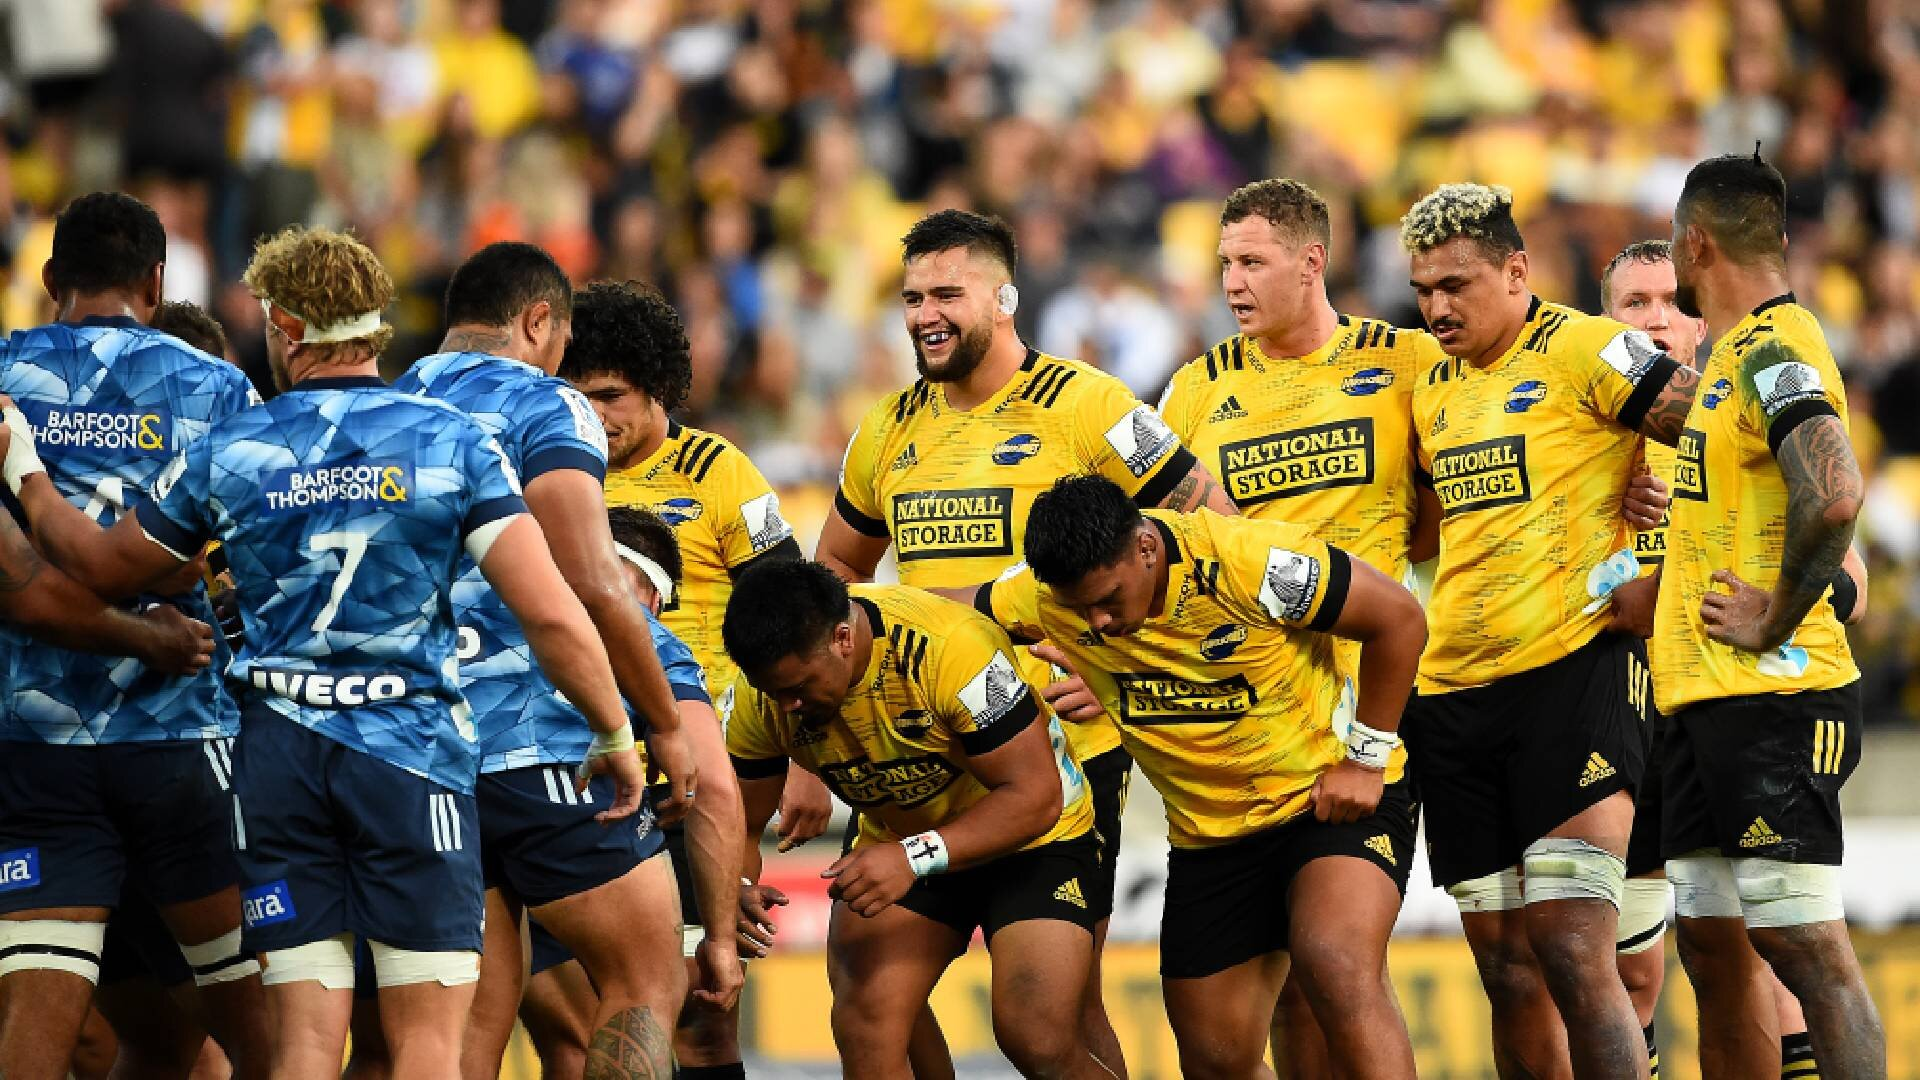 The two key lessons rugby can learn from the NRL's innovative and exhilarating return